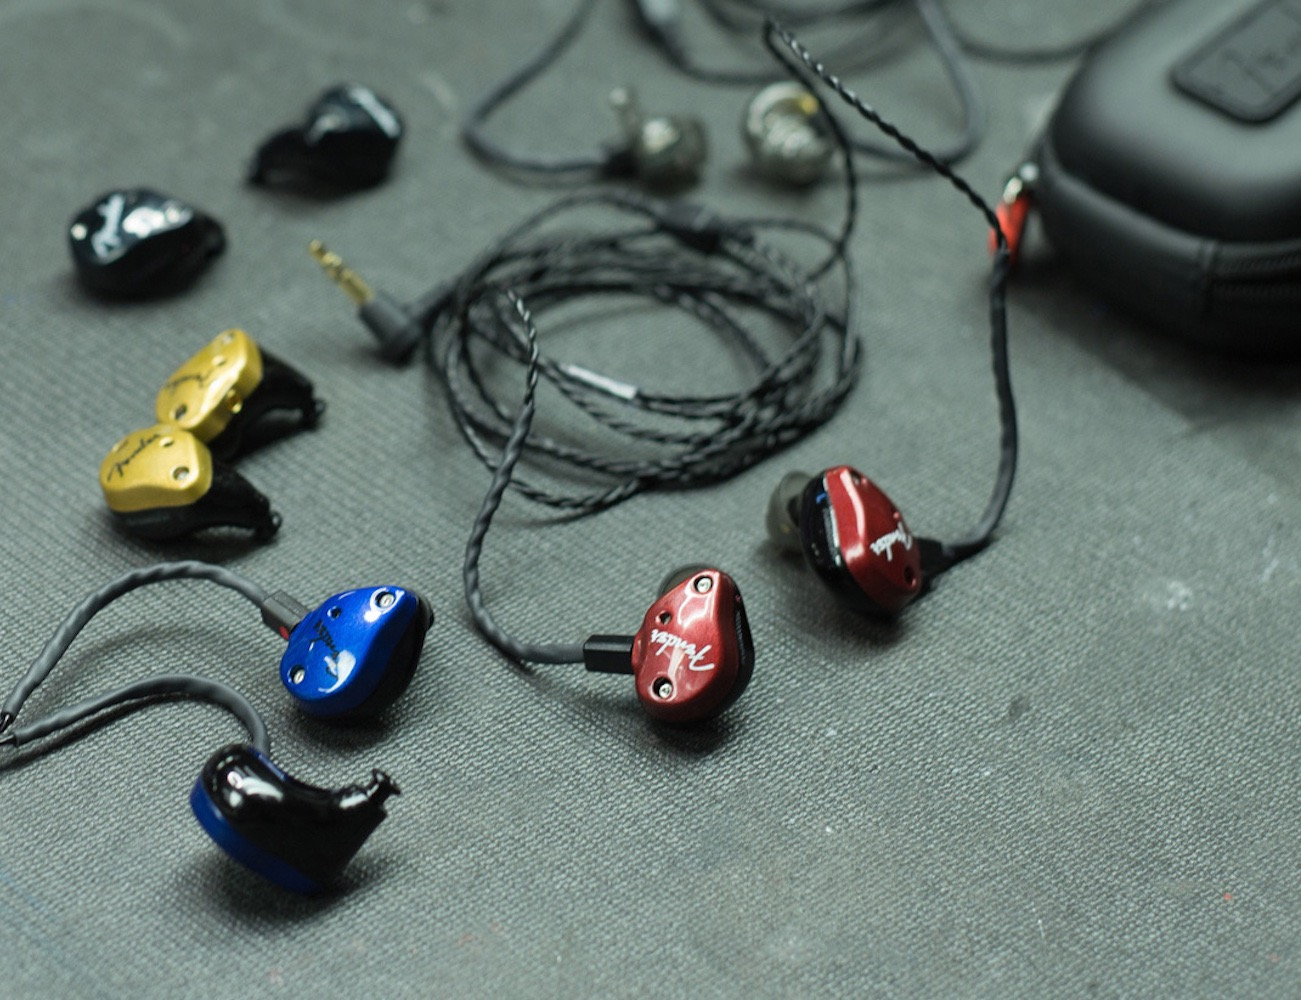 Fender+FXA6+Pro+In-Ear+Monitor+Headphones